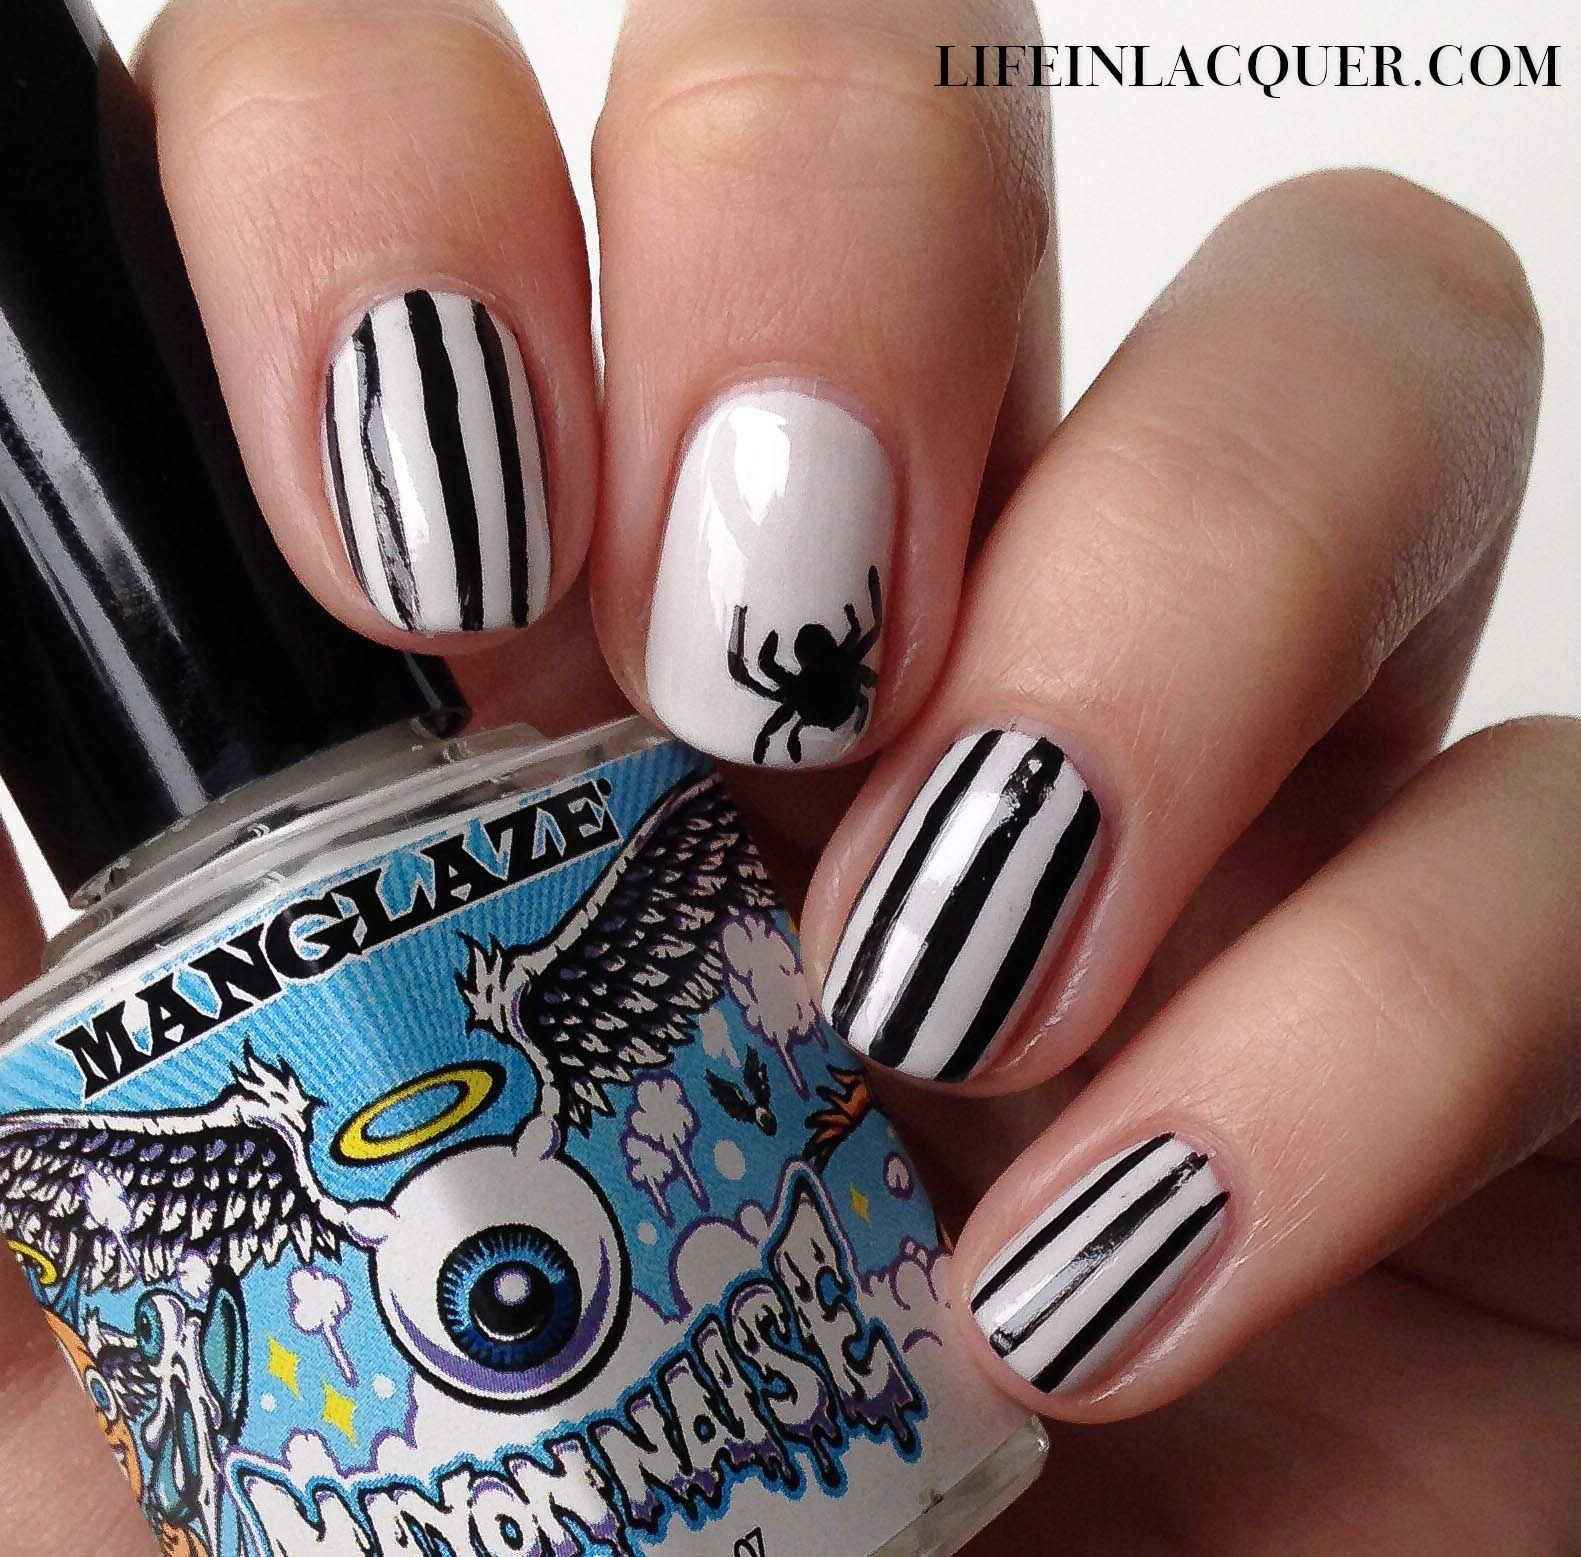 Easy Halloween spider nail art, reminds me of Beetlejuice! Using Manglaze  and acrylic paint - Easy Halloween Spider Nail Art, Reminds Me Of Beetlejuice! Using